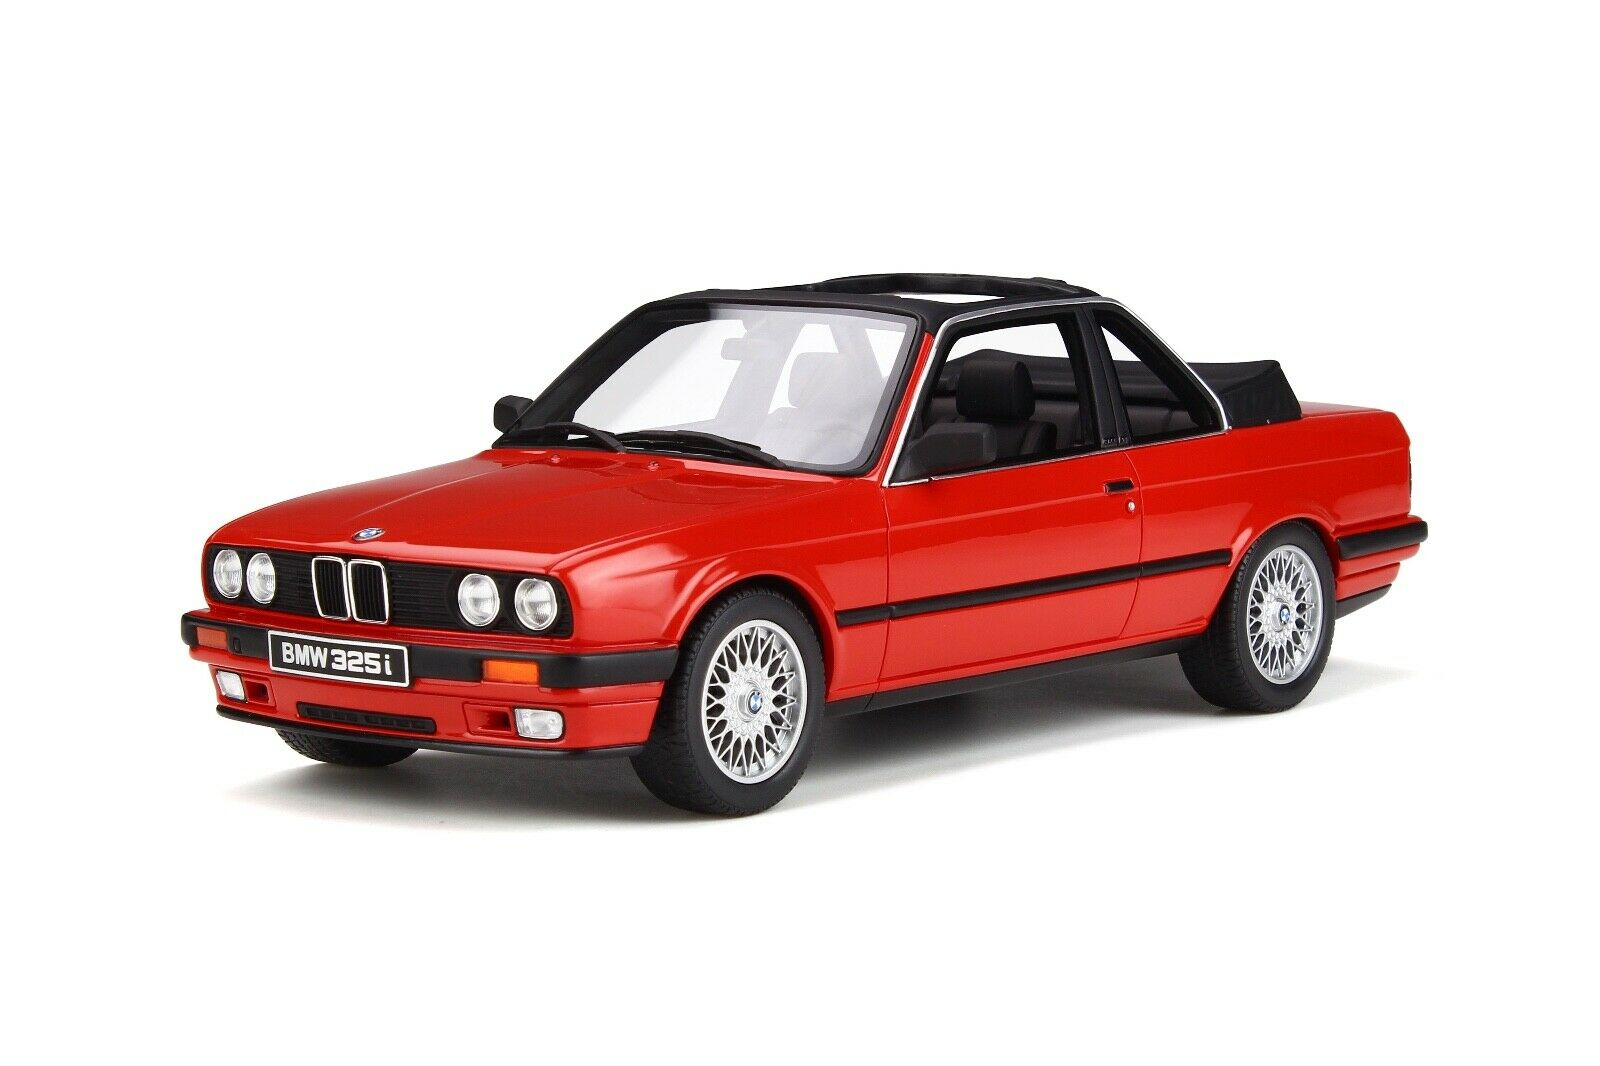 1 18 GT Spirit Otto Mobile  BMW 3 Baur Series Convertible E30 1998 in rouge  OT767  jusqu'à 50% de réduction